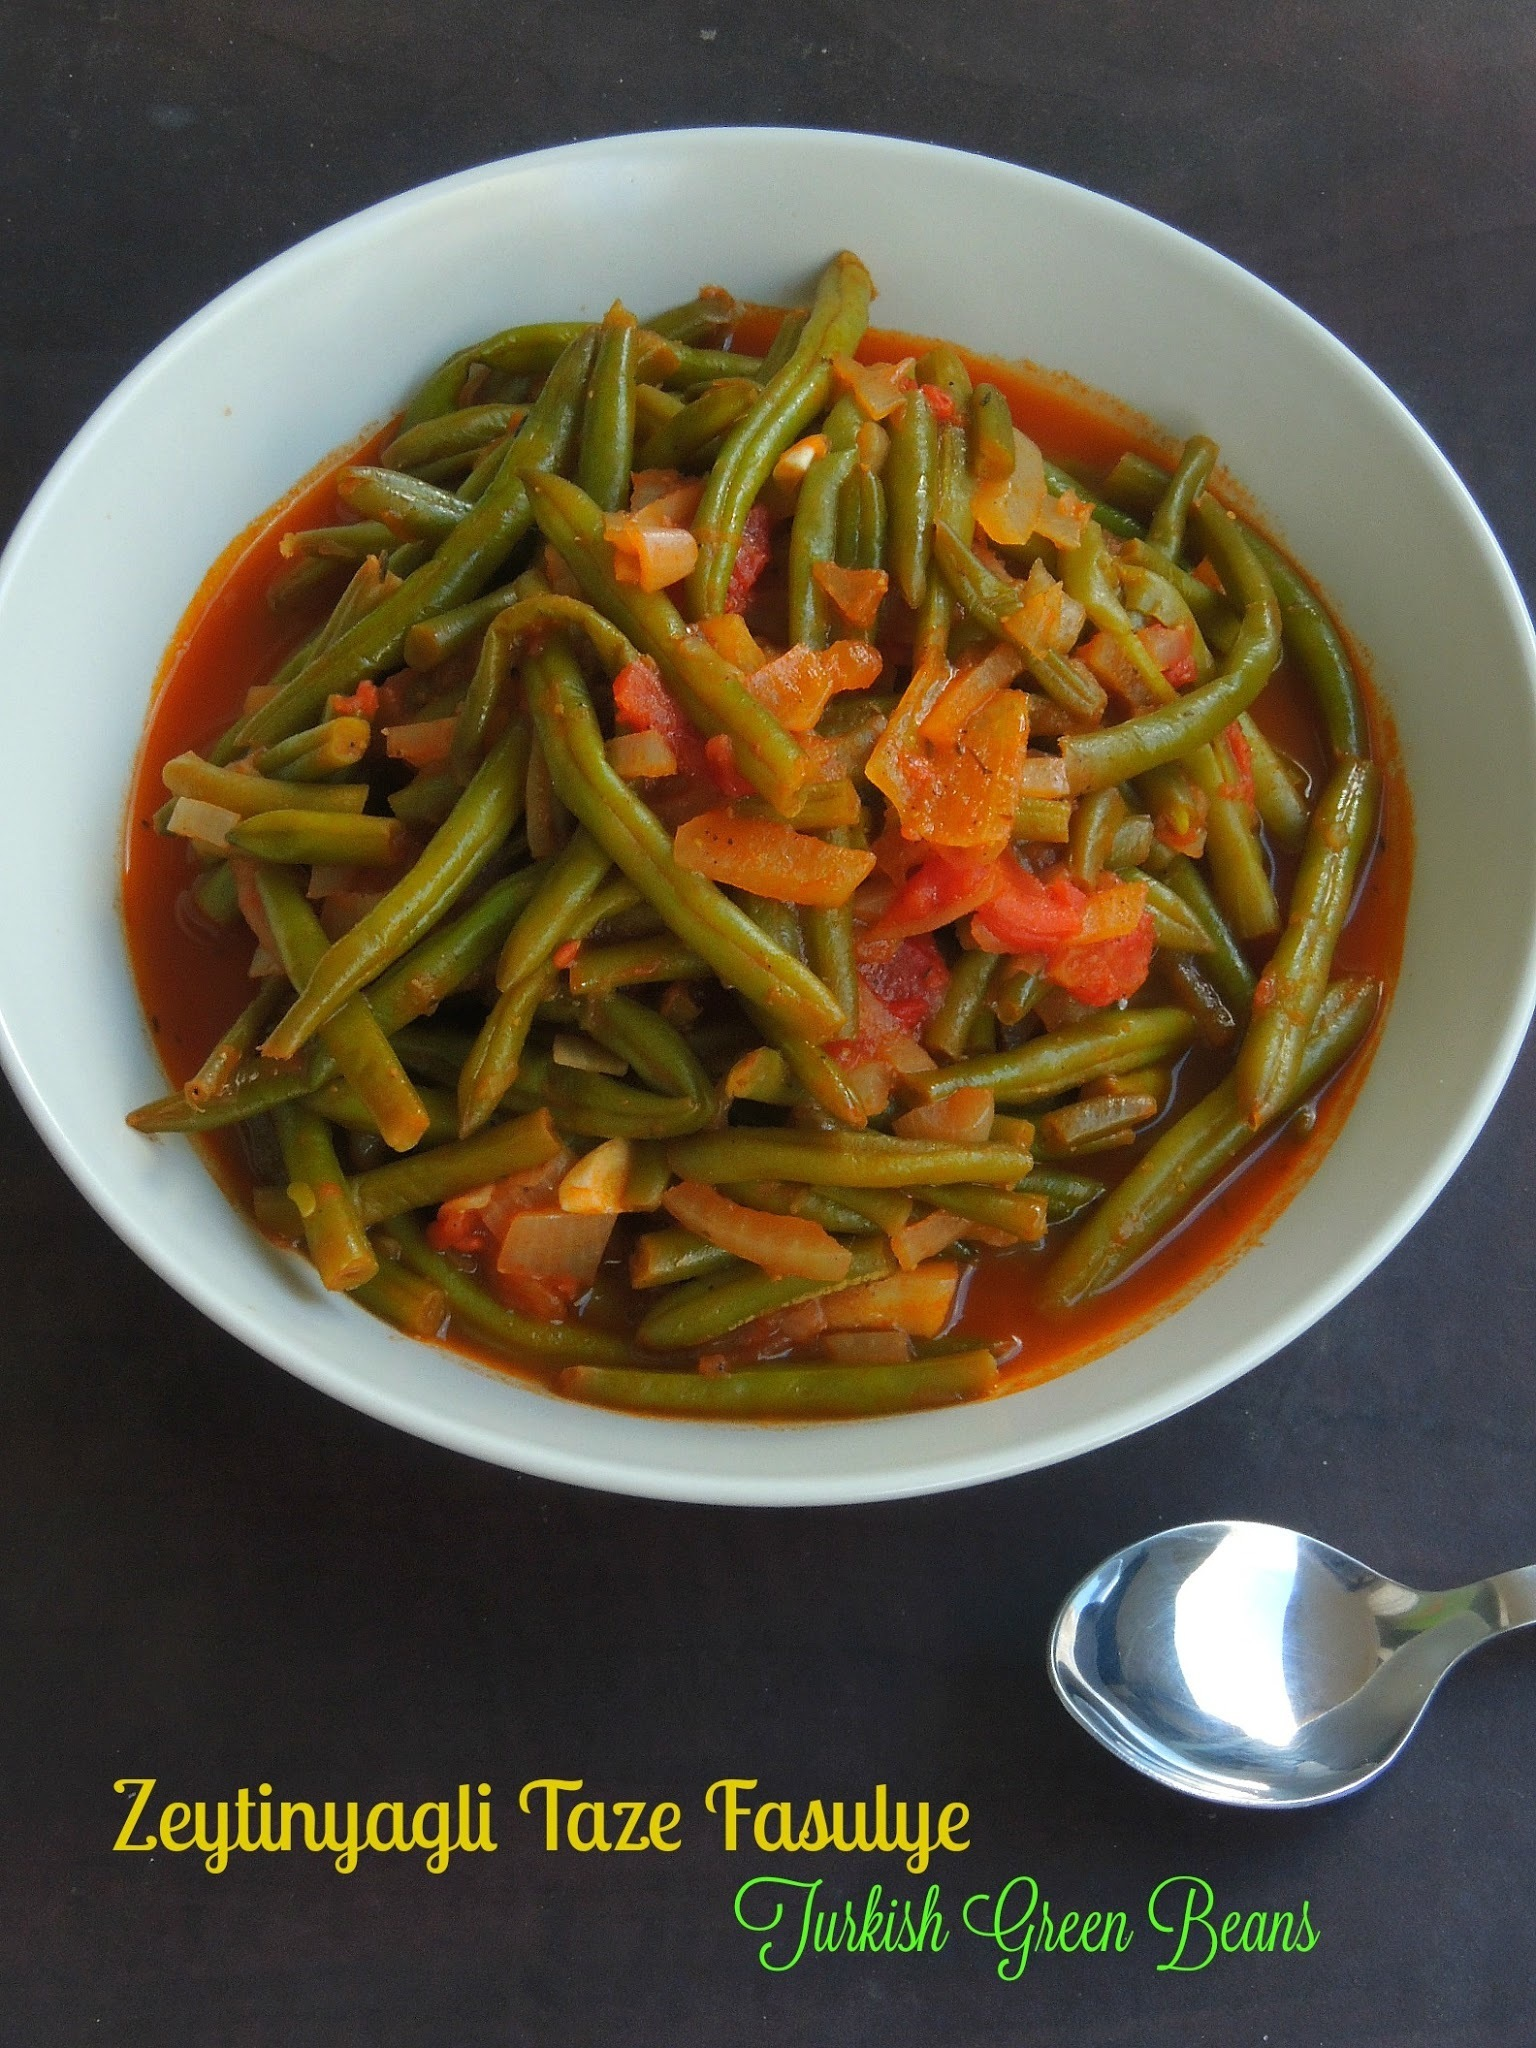 Zeytinyagli Taze Fasulye - Turkish Green Beans With Olive Oil